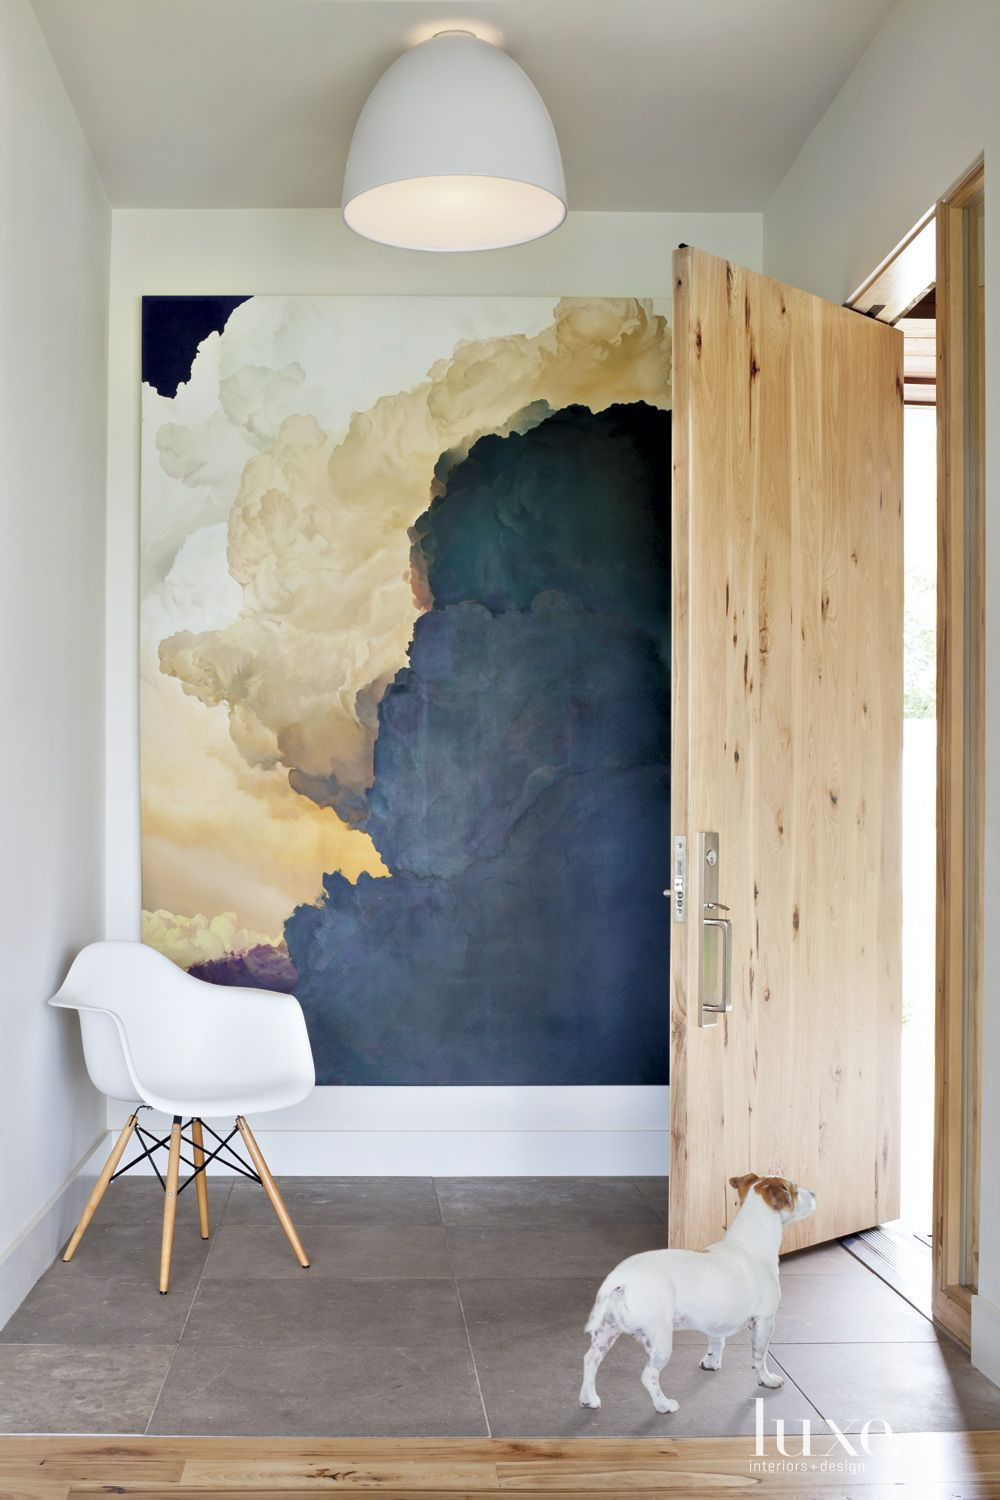 Gallery Style Walls in Your Home, Large Cloud Painting, Light Oak Door